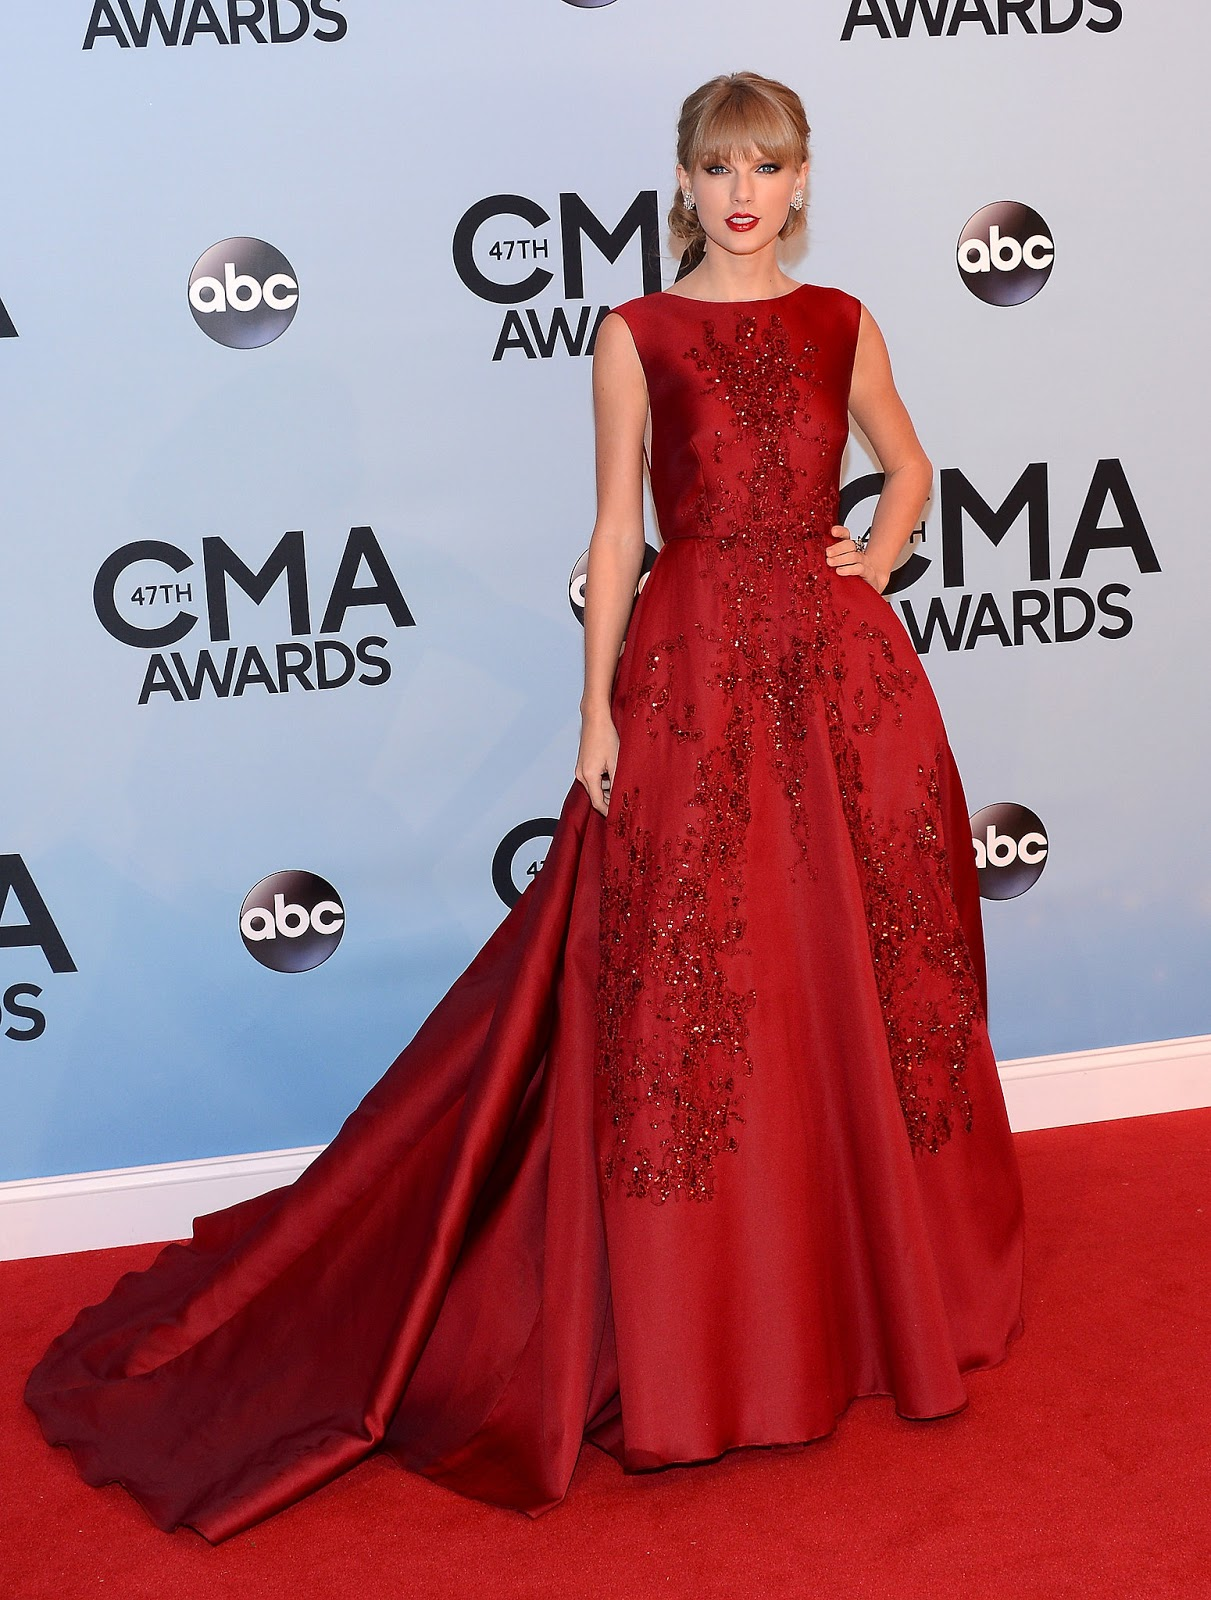 Taylor Swift wore a red ball gown to the CMAs - Valentin MAG